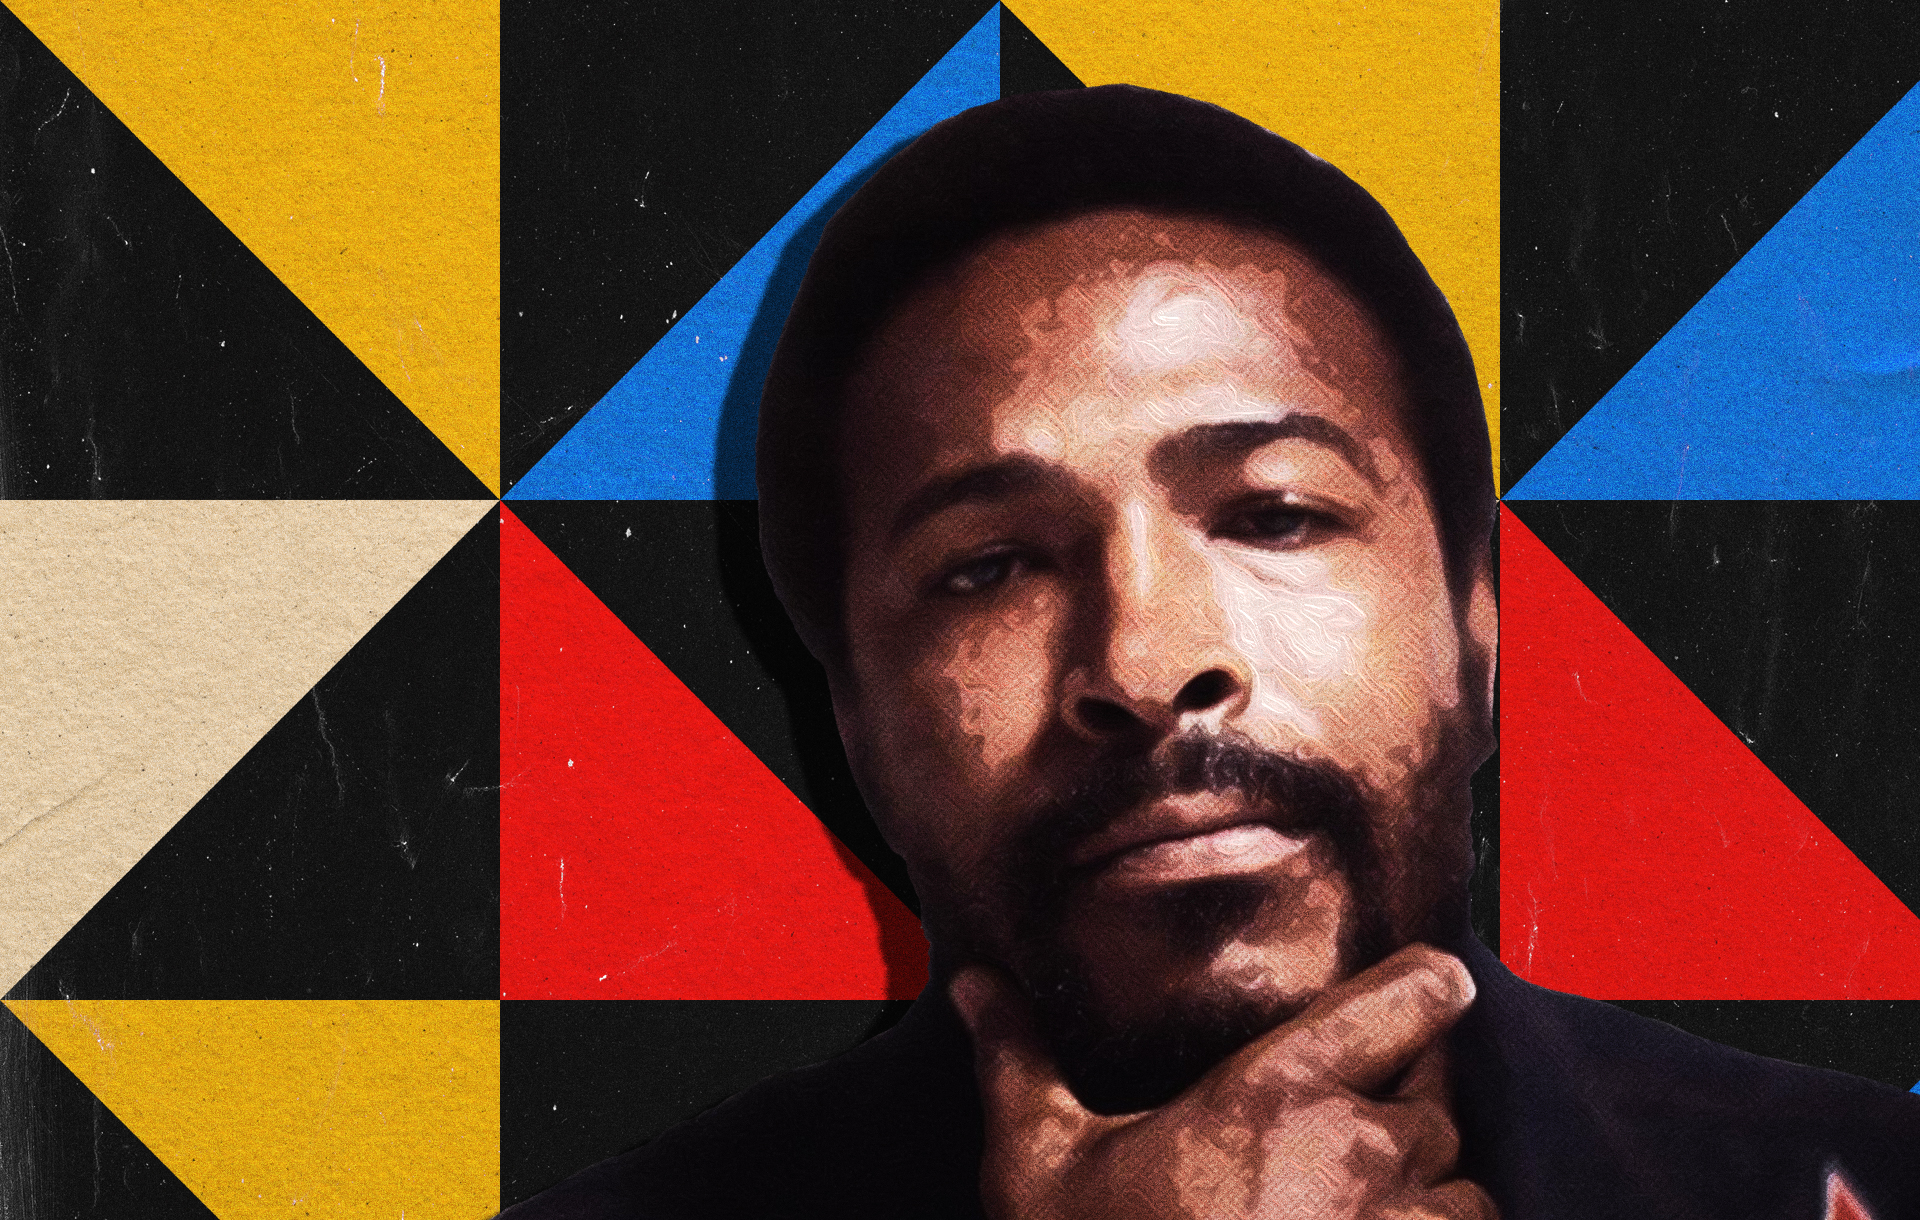 Marvin Gaye - Portrait of A Music Genius As A Tortured Artist   Features   LIVING LIFE FEARLESS